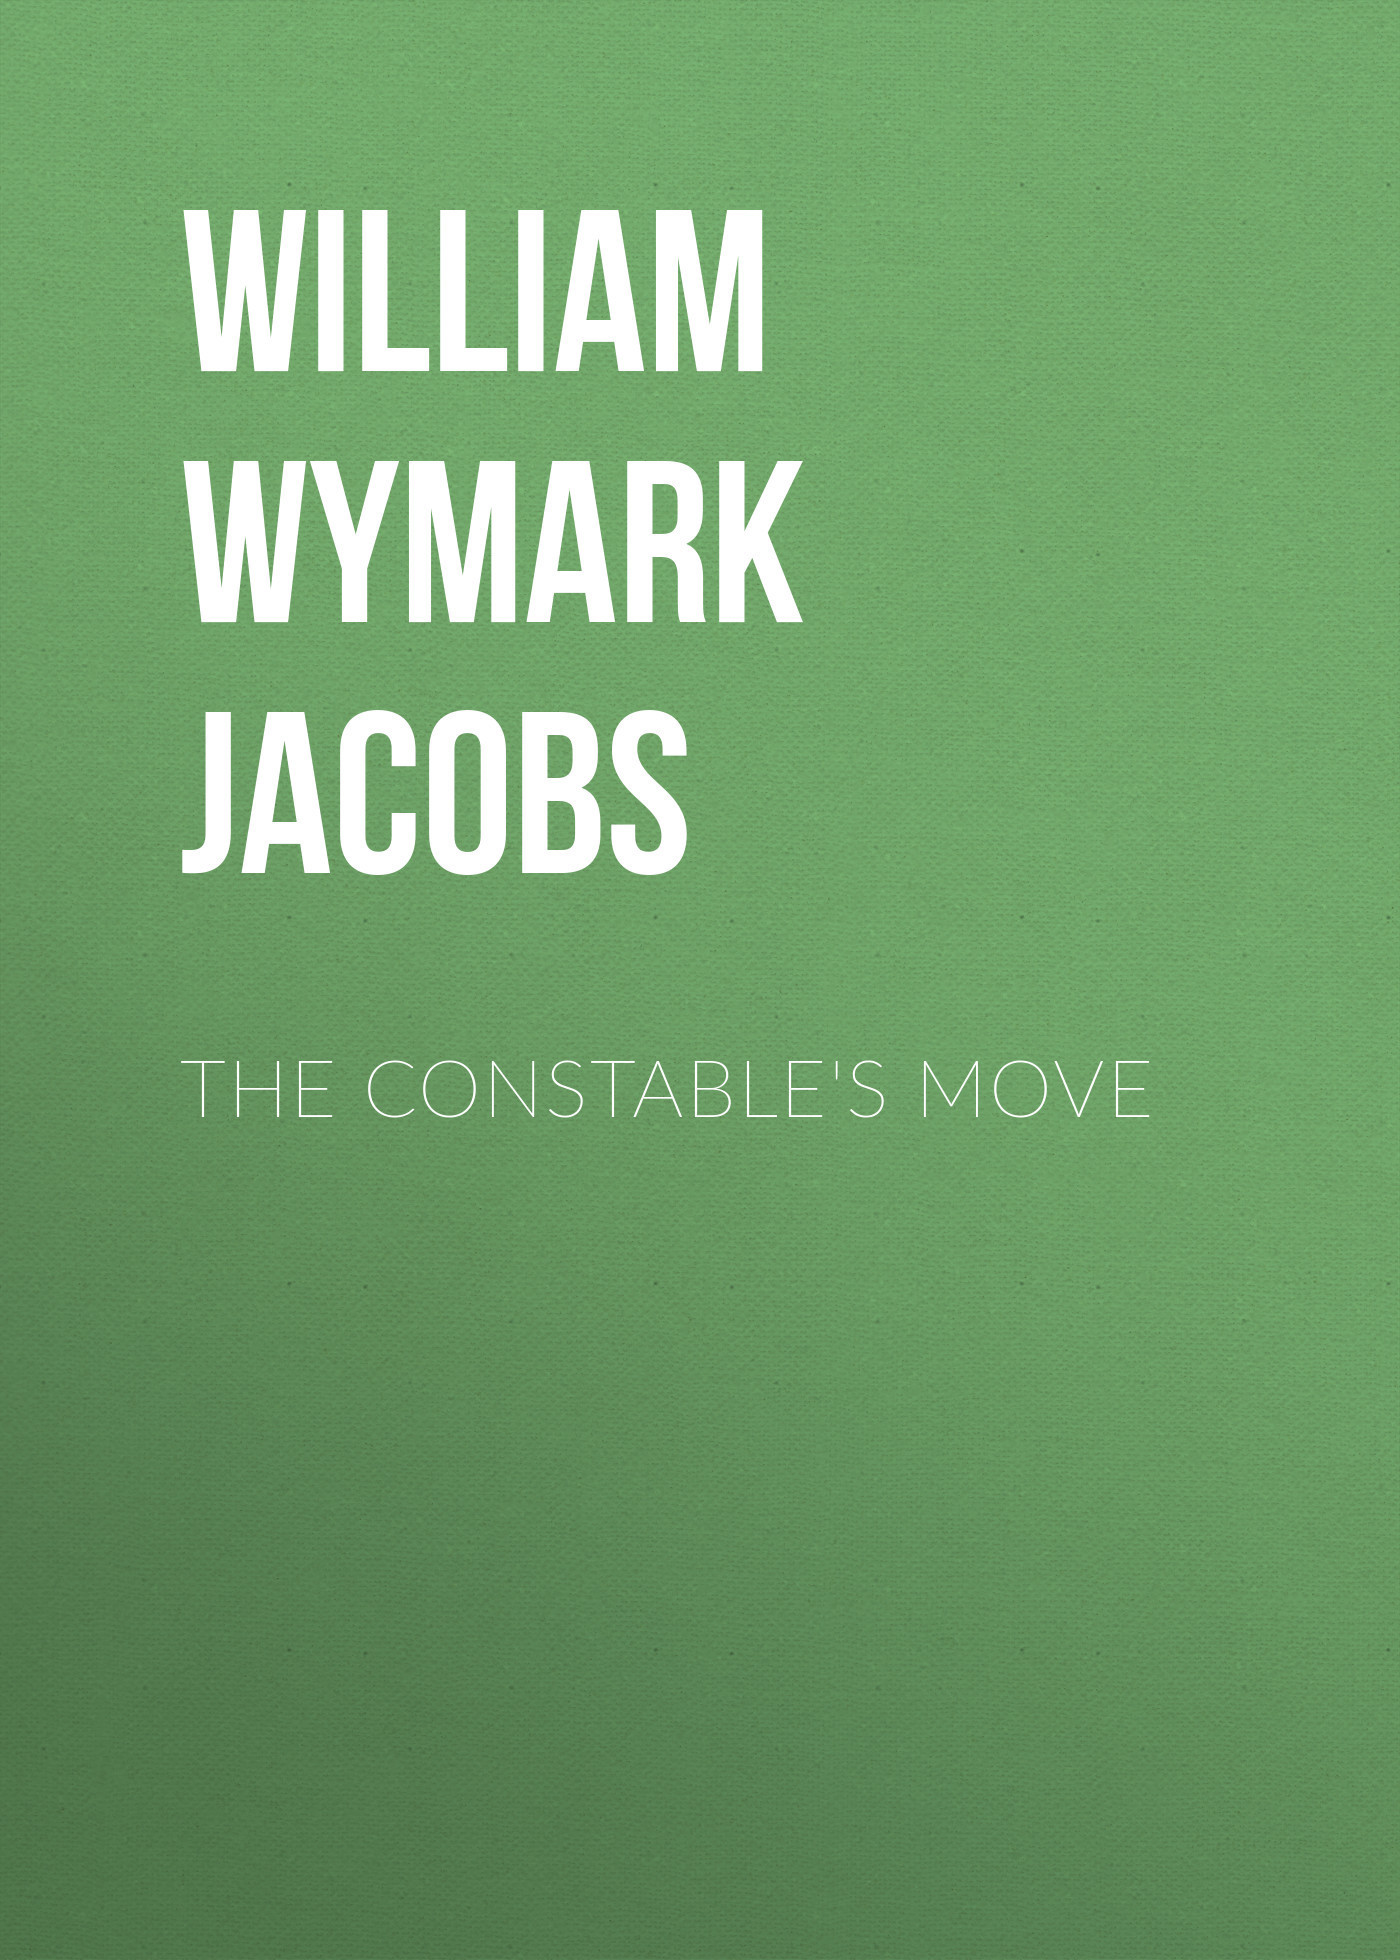 William Wymark Jacobs The Constable's Move william wymark jacobs the constable s move